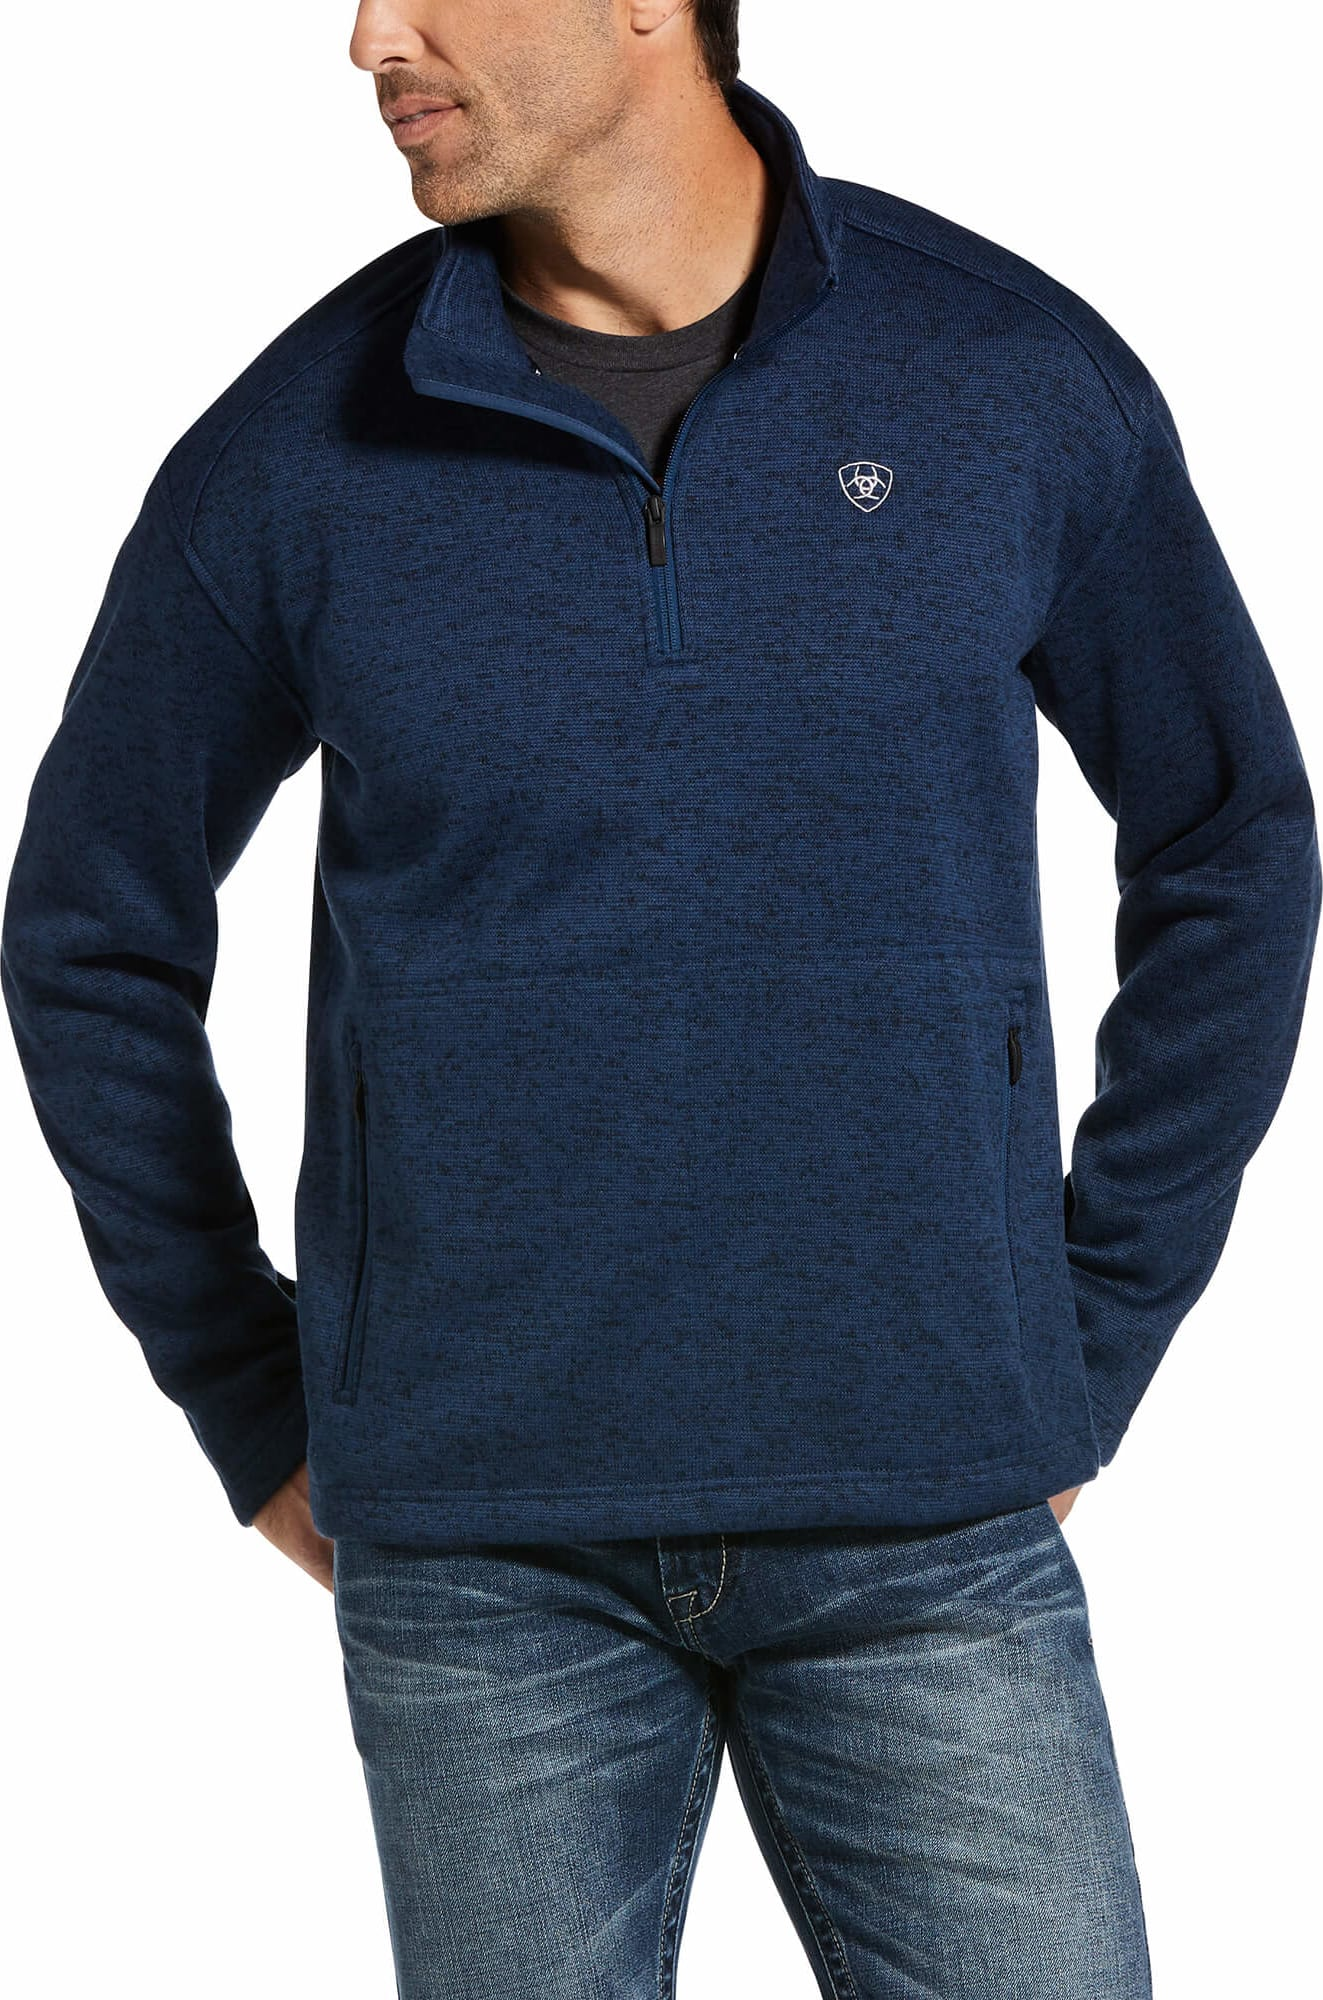 Caldwell 1/4 Zip from Ariat